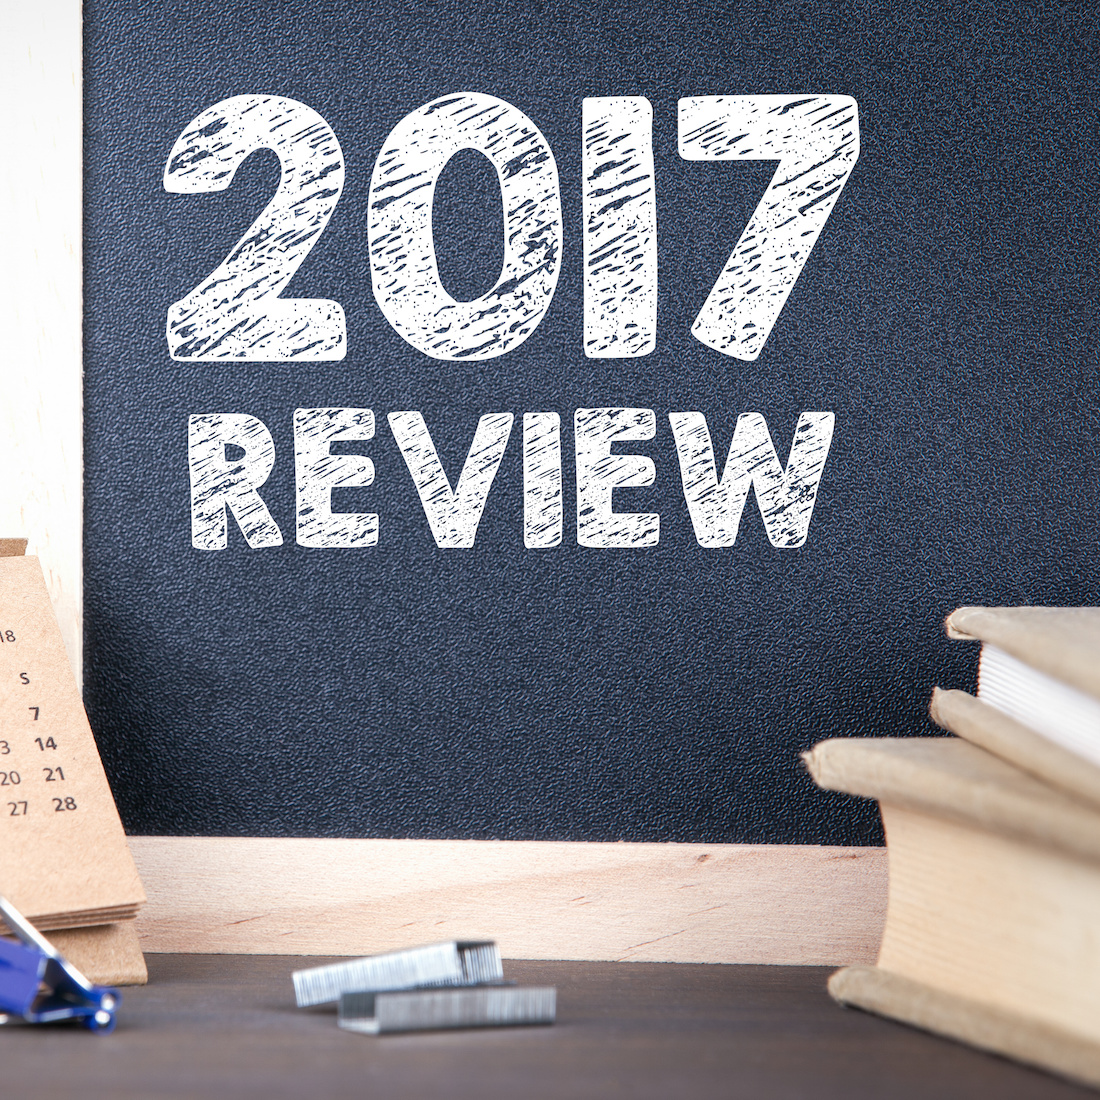 2017 review. paper calendar and chalkboard on a wooden table